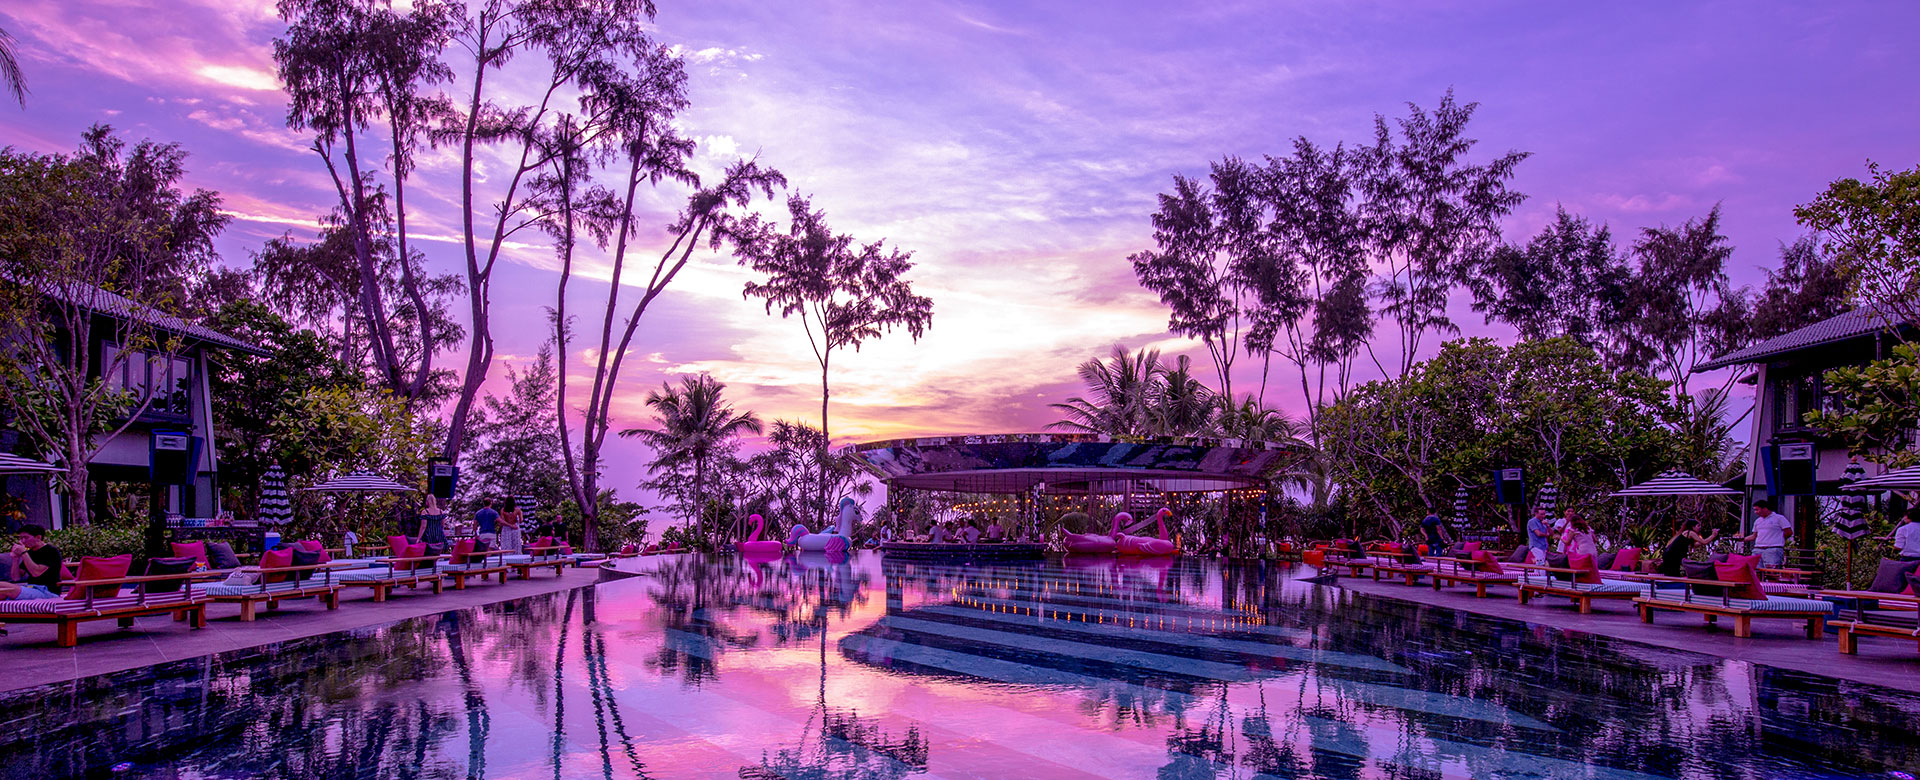 6-Over-View-Baba-Beach-Club-Phuket-Khok-Kloi-Best-Luxury-Beach-resort-Hotel